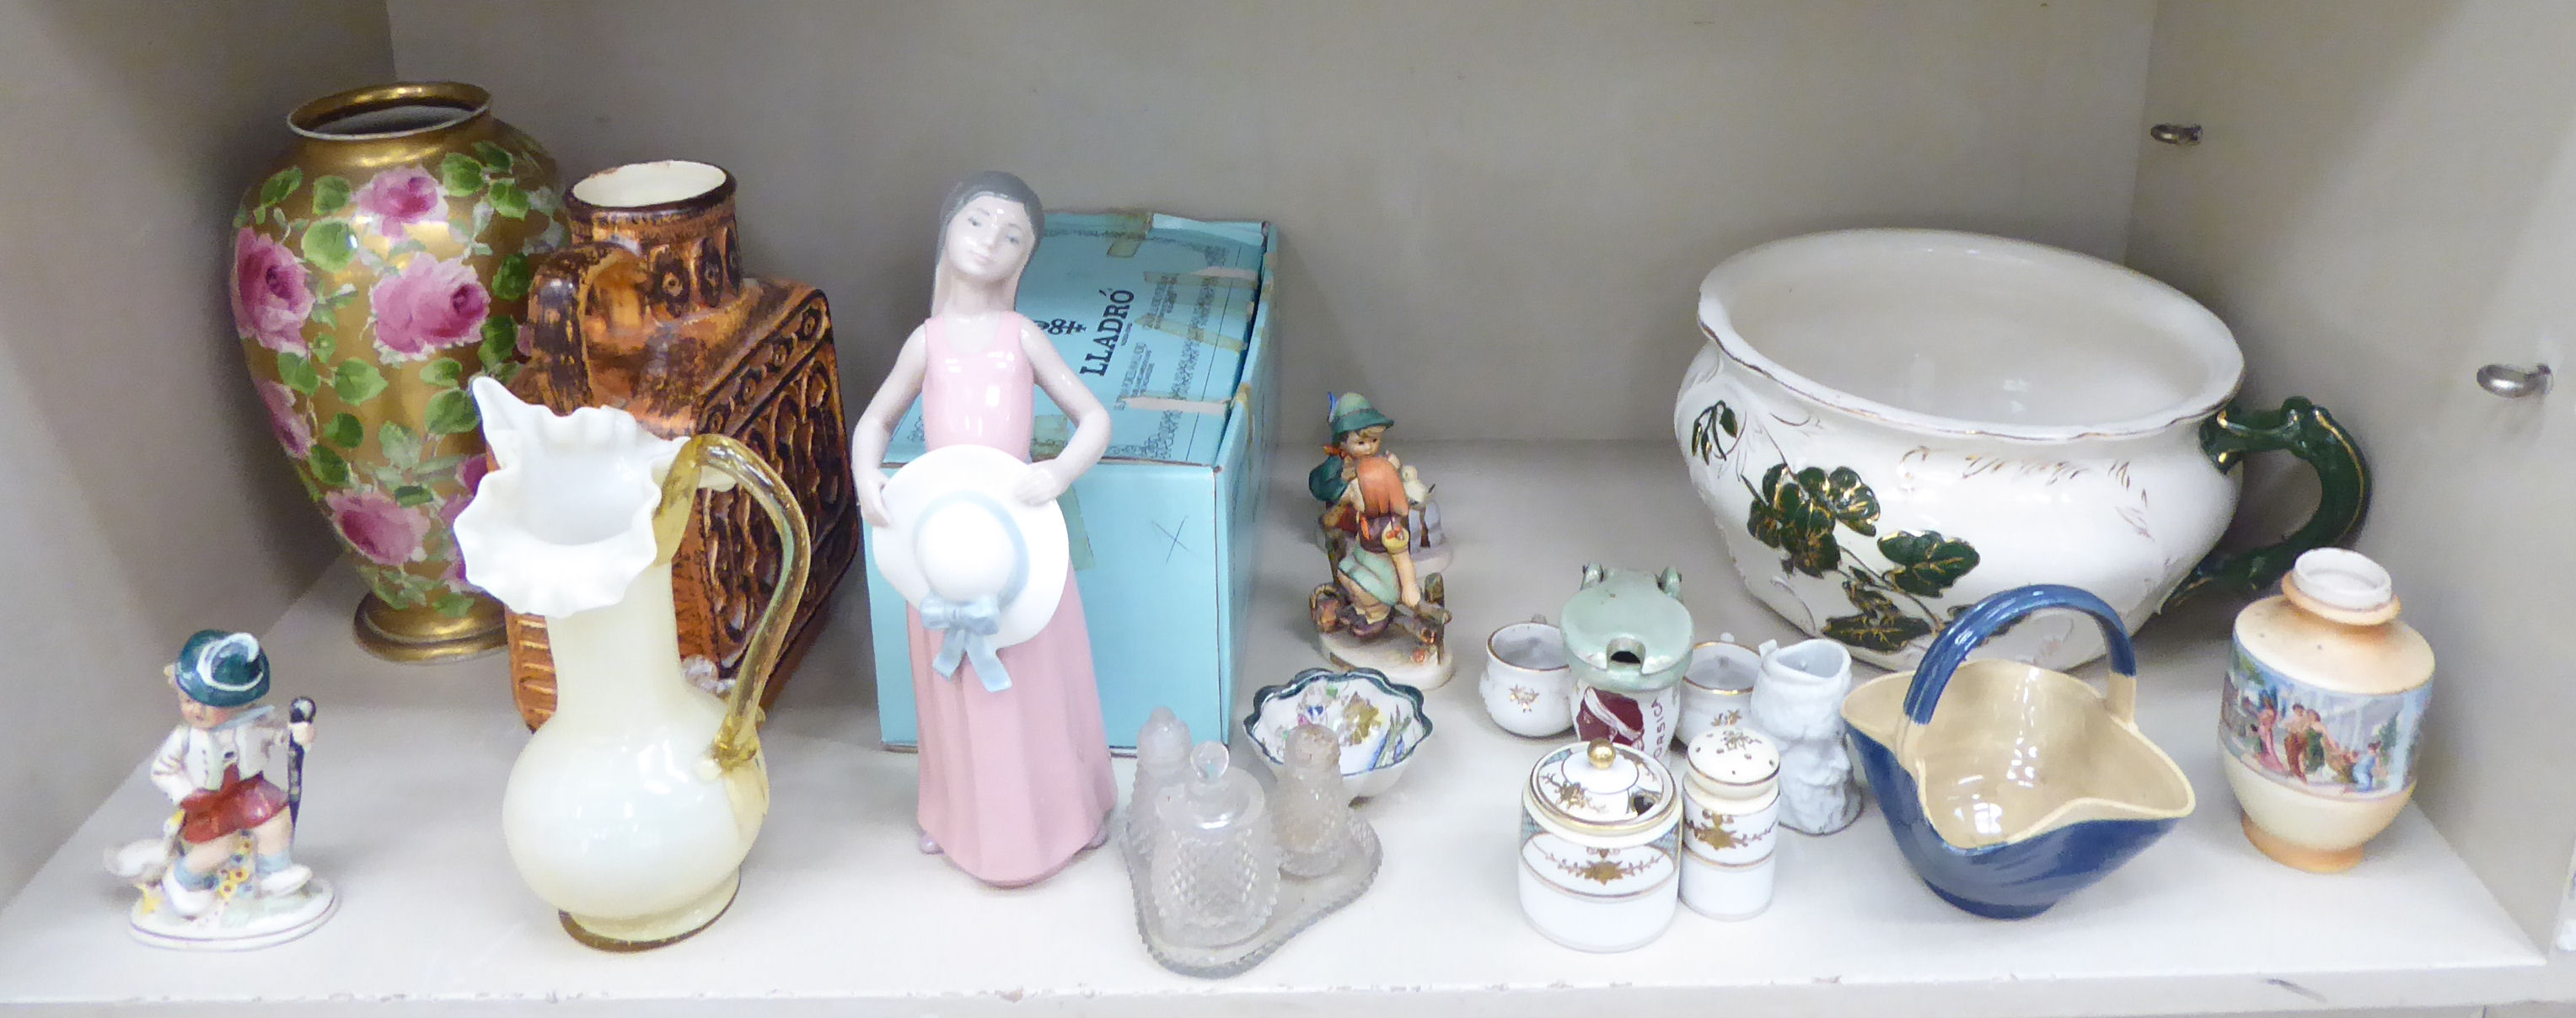 Lot 45 - Decorative ceramics and glassware: to include a girl wearing a pink dress 10''h boxed OS3